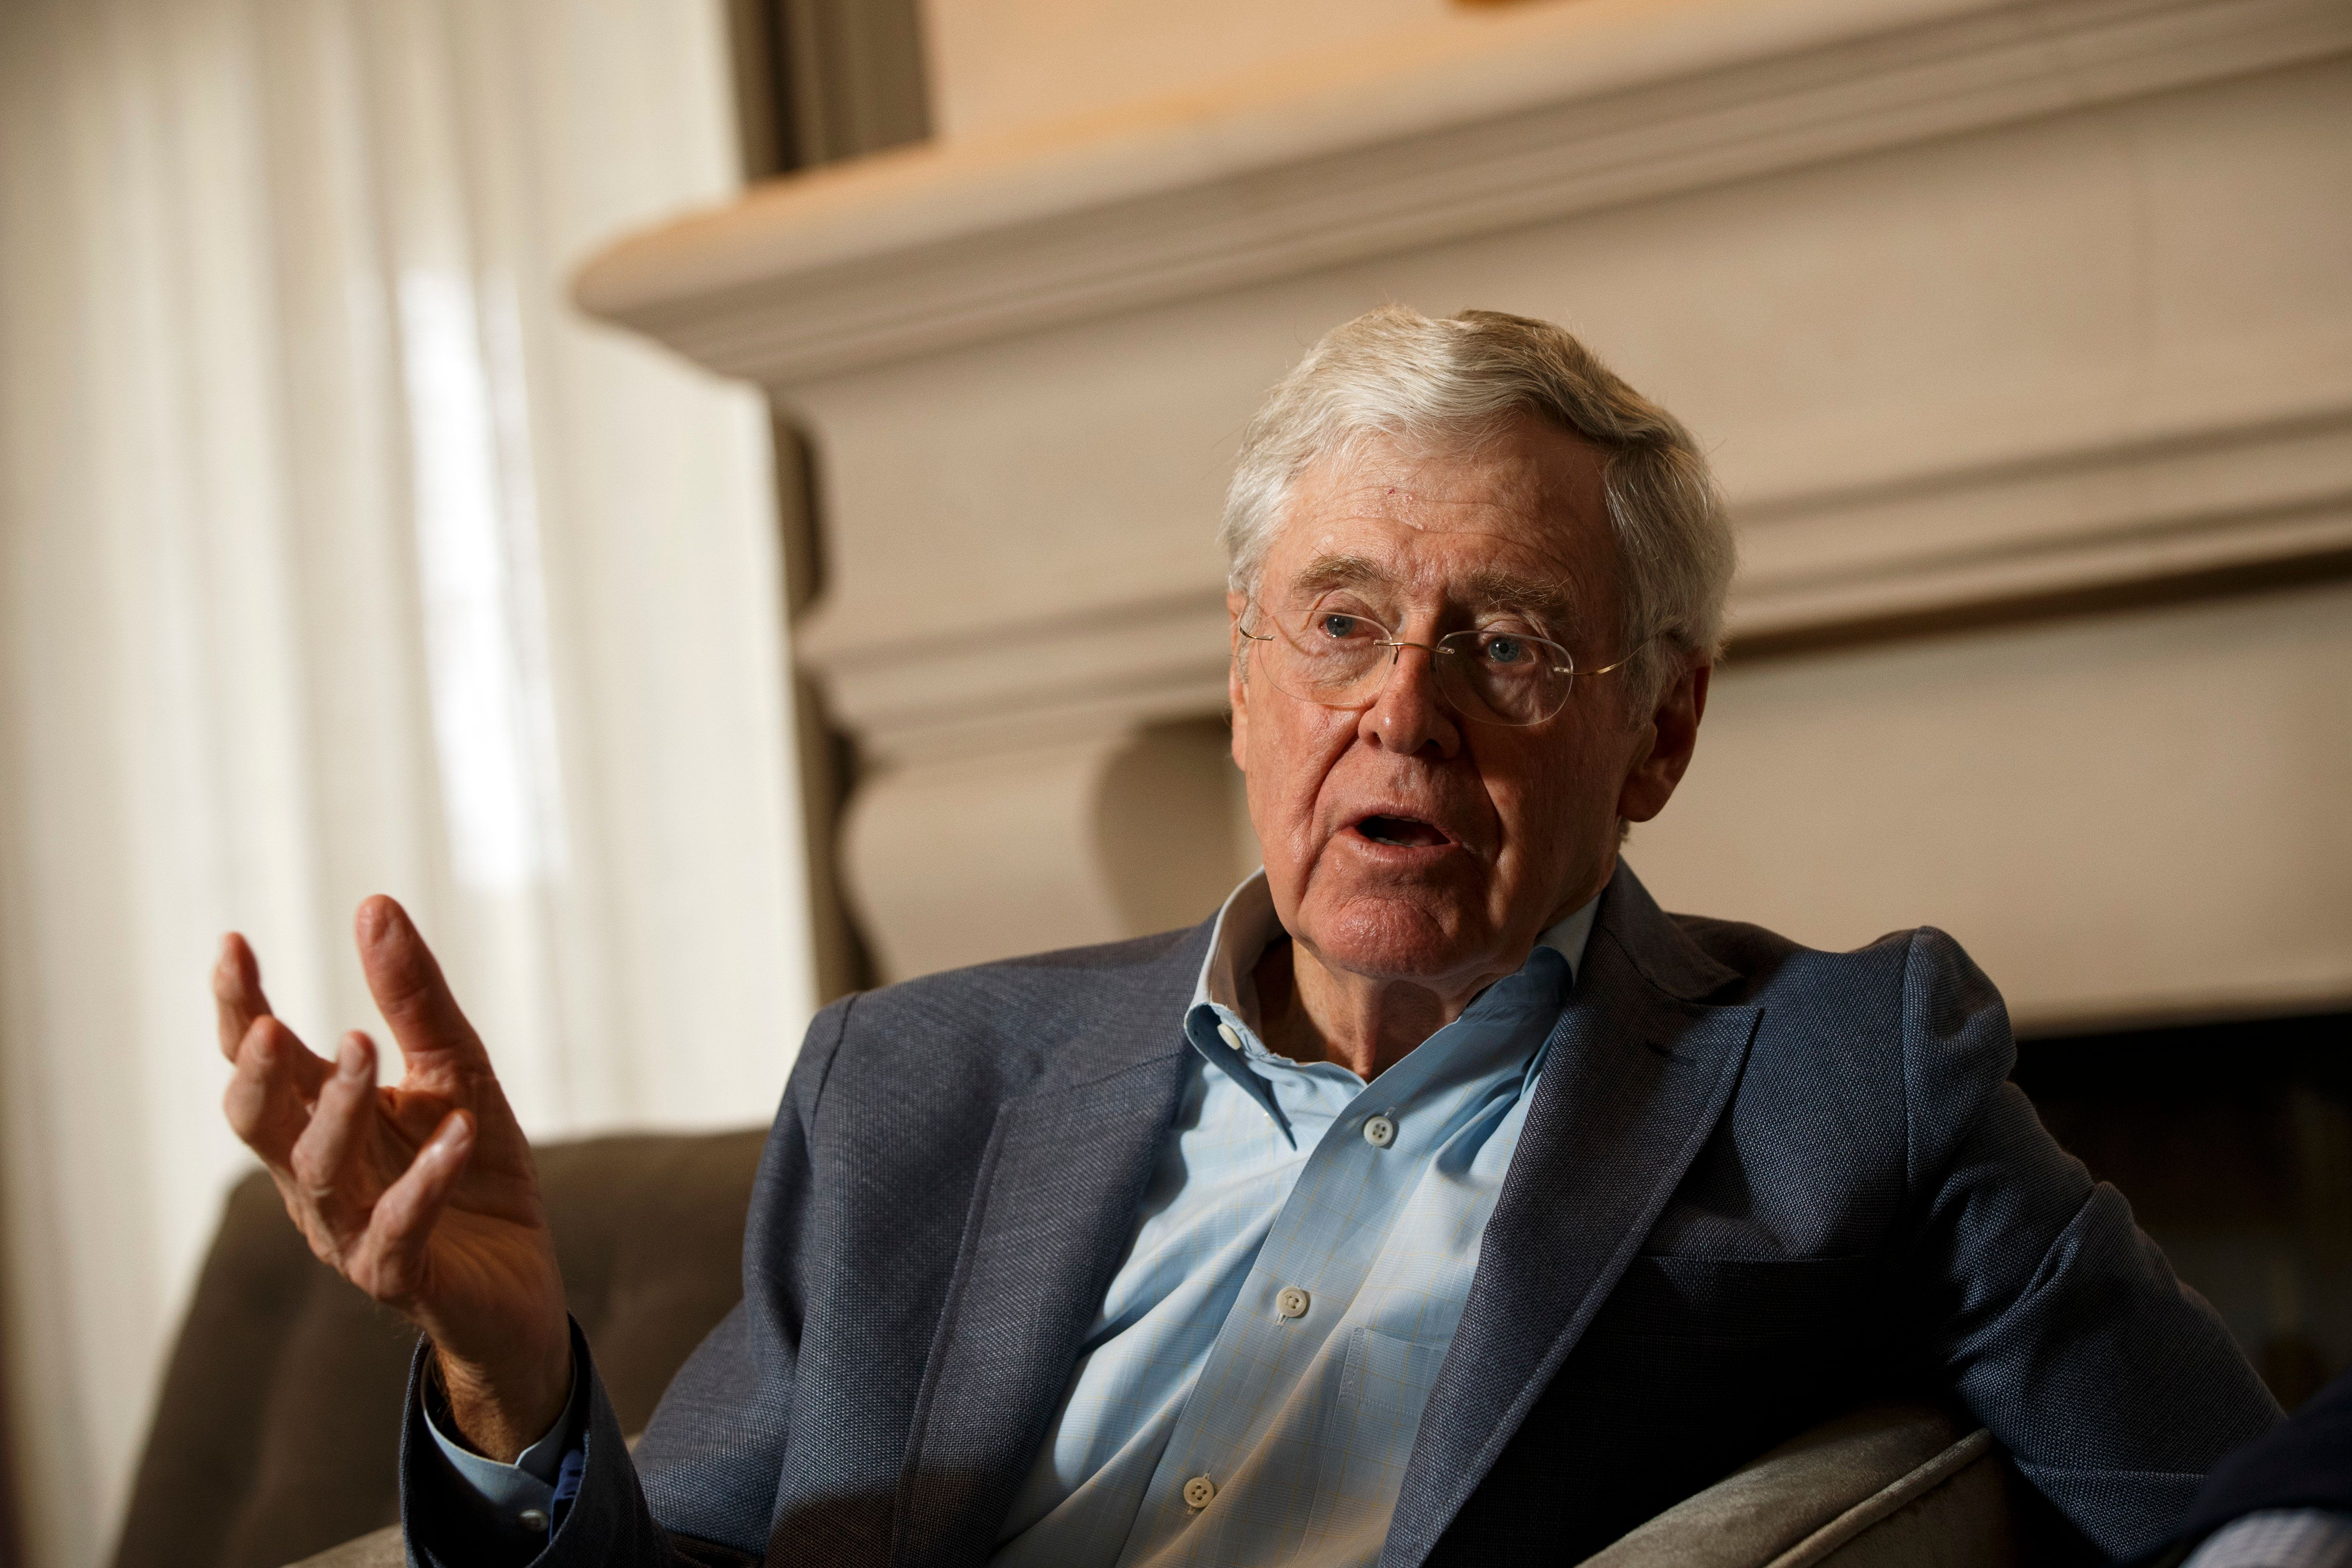 Dana Point, CA - August 3: Charles Koch and Dr. Michael Lomax, president and chief executive officer of the United Negro College Fund, speak during an interview with the Washington Post at the Freedom Partners Summit on Monday, August 3, 2015 in Dana Point, CA. (Photo by Patrick T. Fallon for The Washington Post via Getty Images)